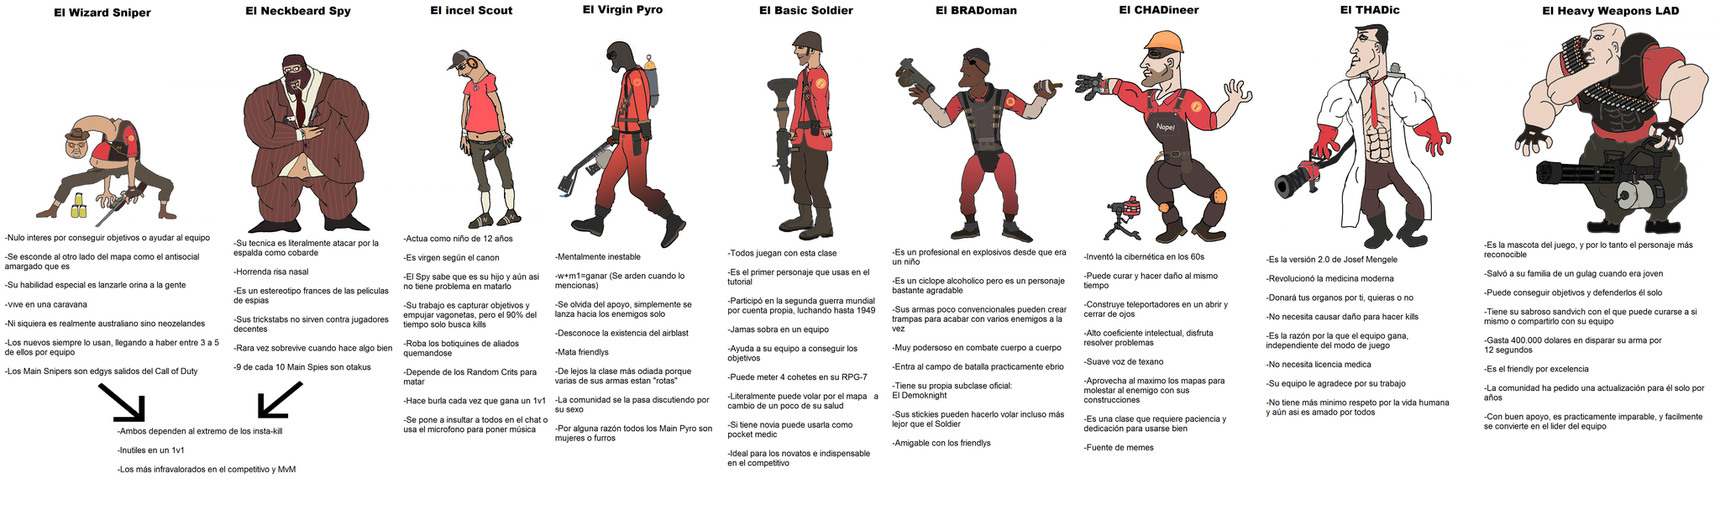 Team Fortress 2 (usen zoom o descarguen) - meme